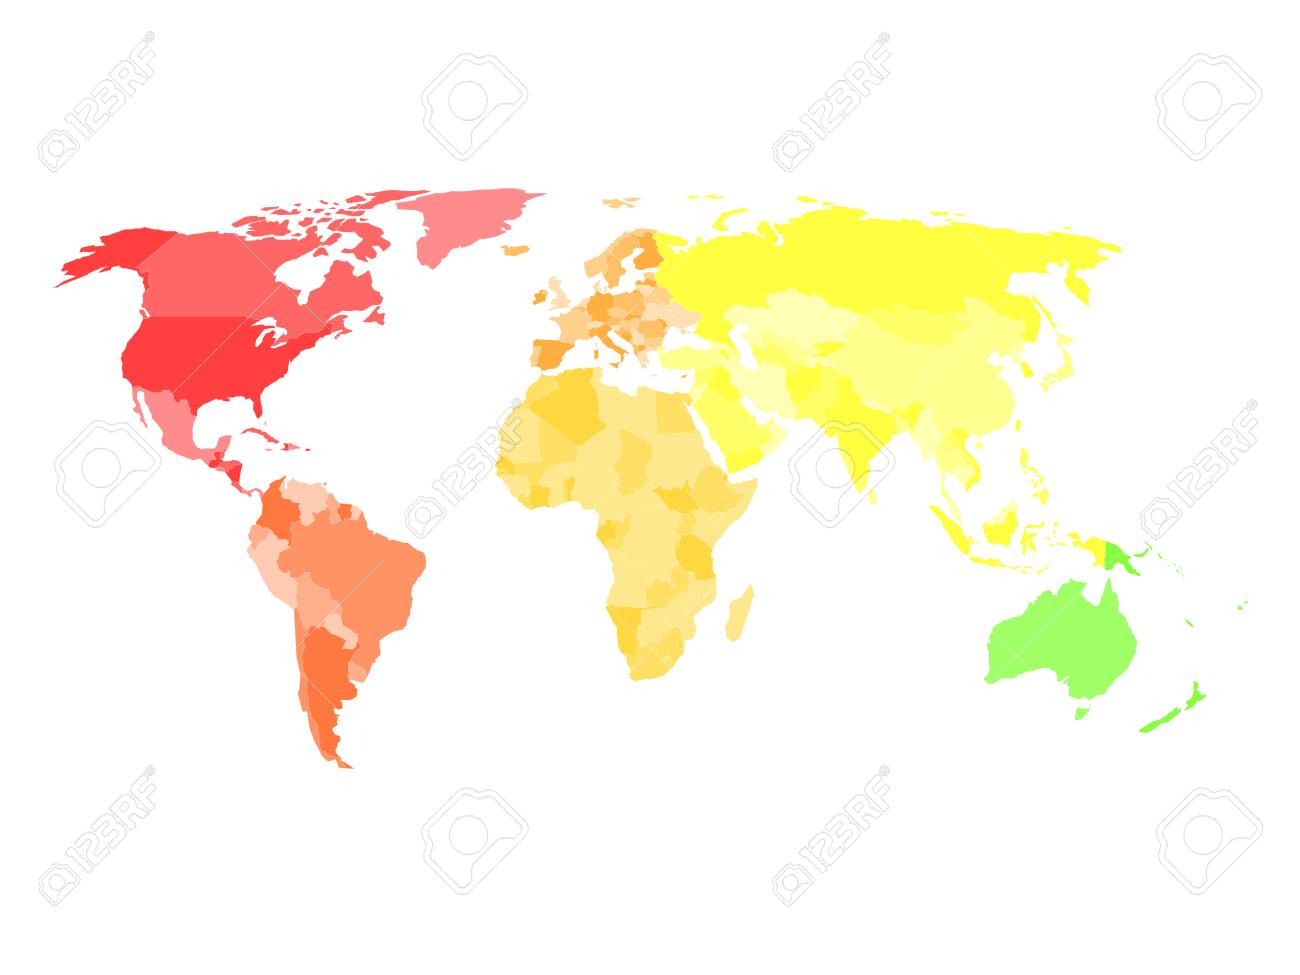 North America Blank Political Map.Blank Simplified Political Map Of World With Different Colors